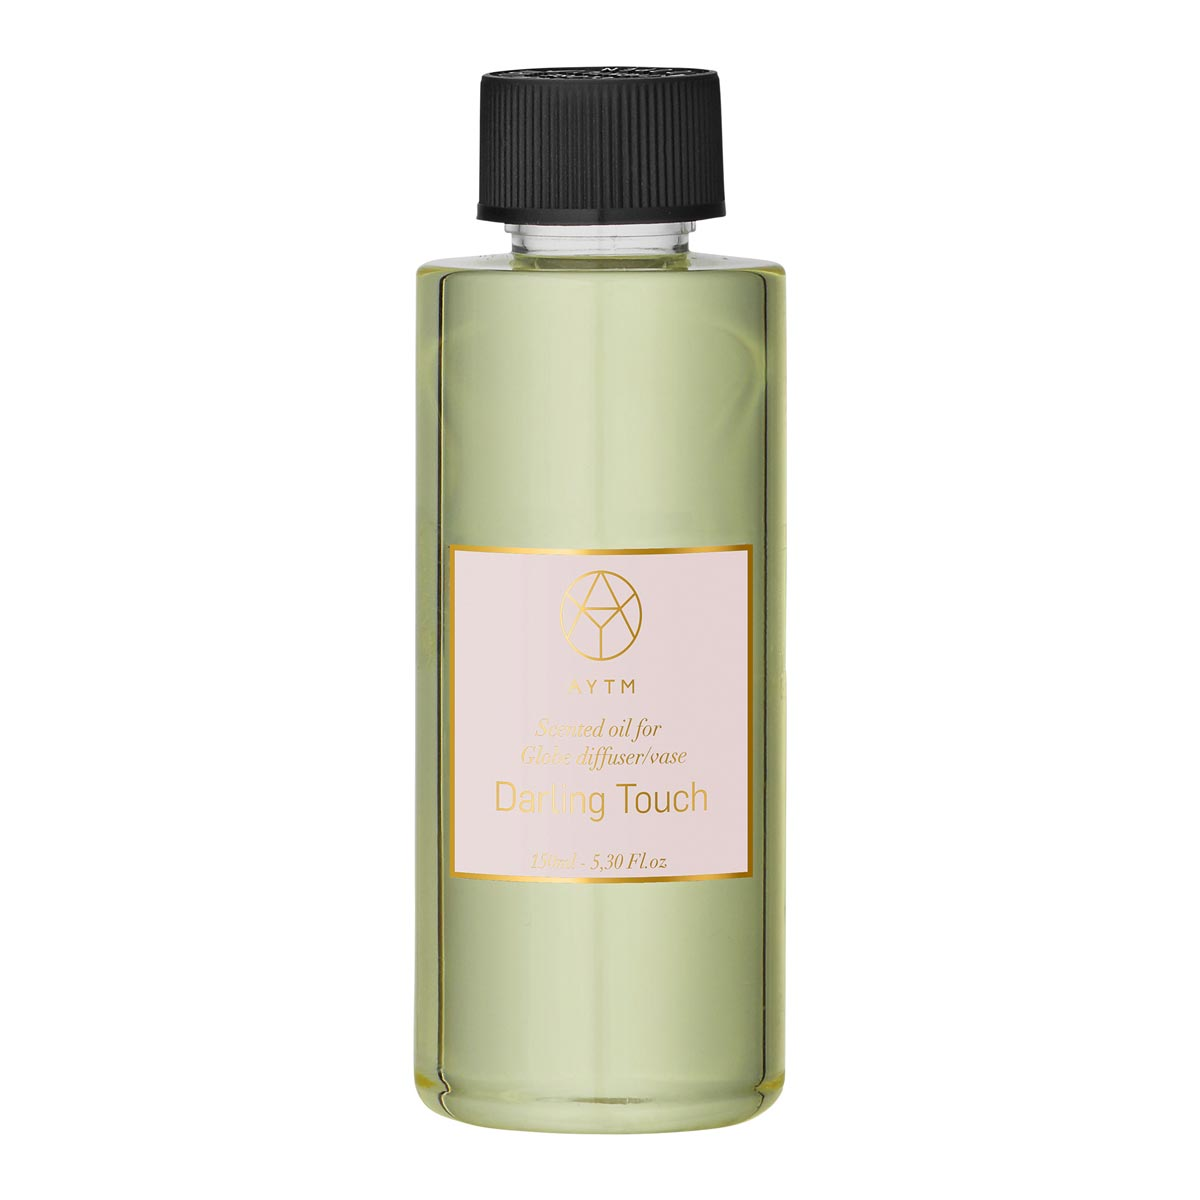 Diffuser, Darling Touch (150ml) - AYTM - Bild 1